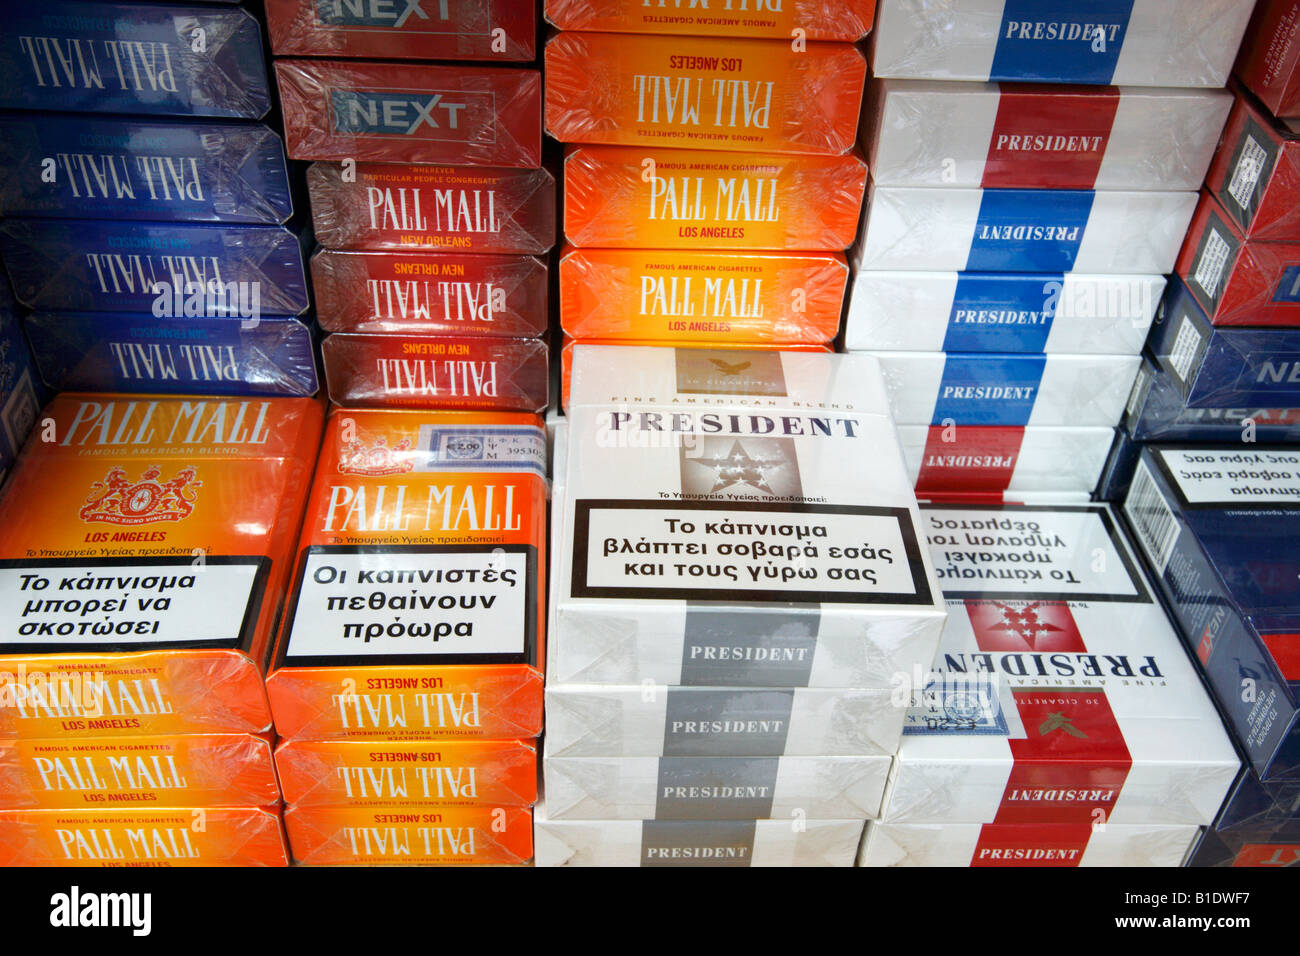 Where can i buy Dunhill cigarettes in Michigan